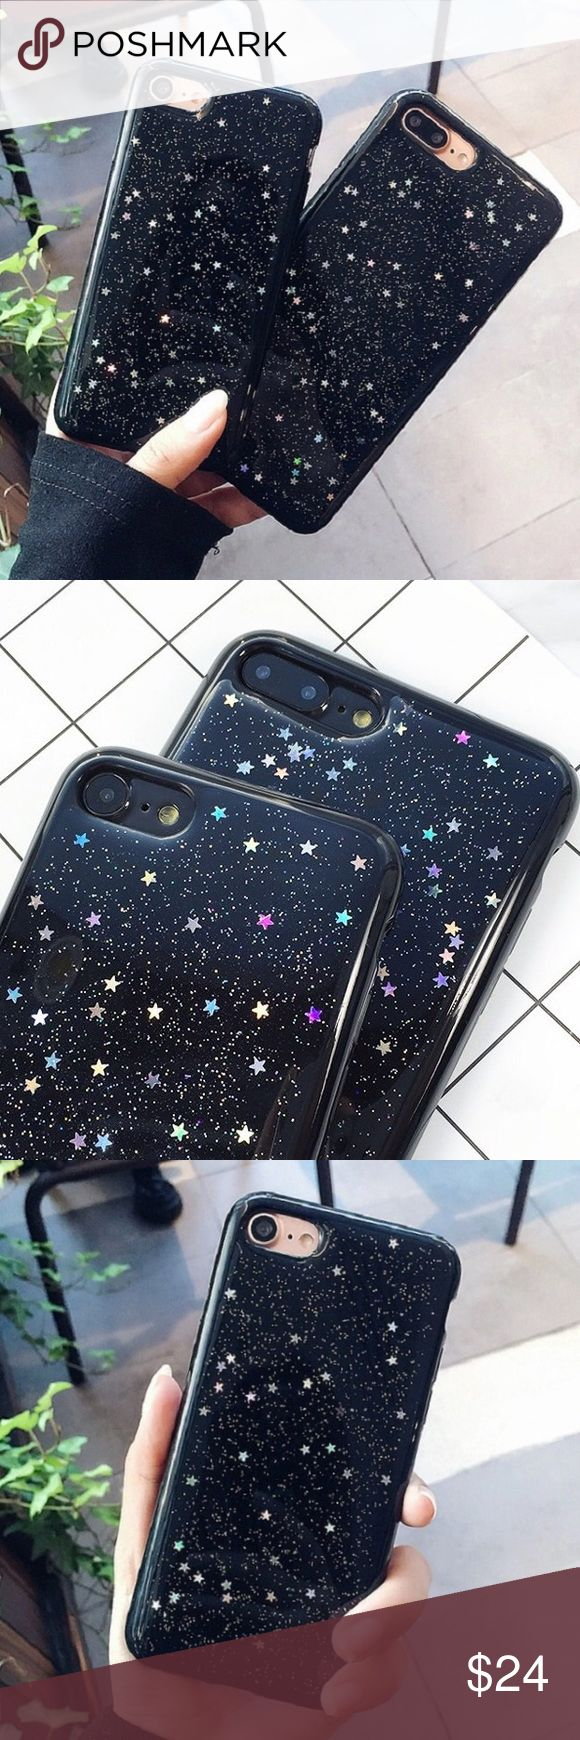 "Black sparkly star iPhone 6/6s - 7 - Plus case •sizes:  iPhone 6/6s (4.7"") iPhone 7 (4.7"") iPhone 6 Plus (5.5"") iPhone 7 Plus (5.5"")  •flexible silicone   •phone not included   •no trades    *please make sure you purchase the correct size case. i am not responsible if you purchase the wrong size  item #: 119 B-Long Boutique  Accessories Phone Cases"